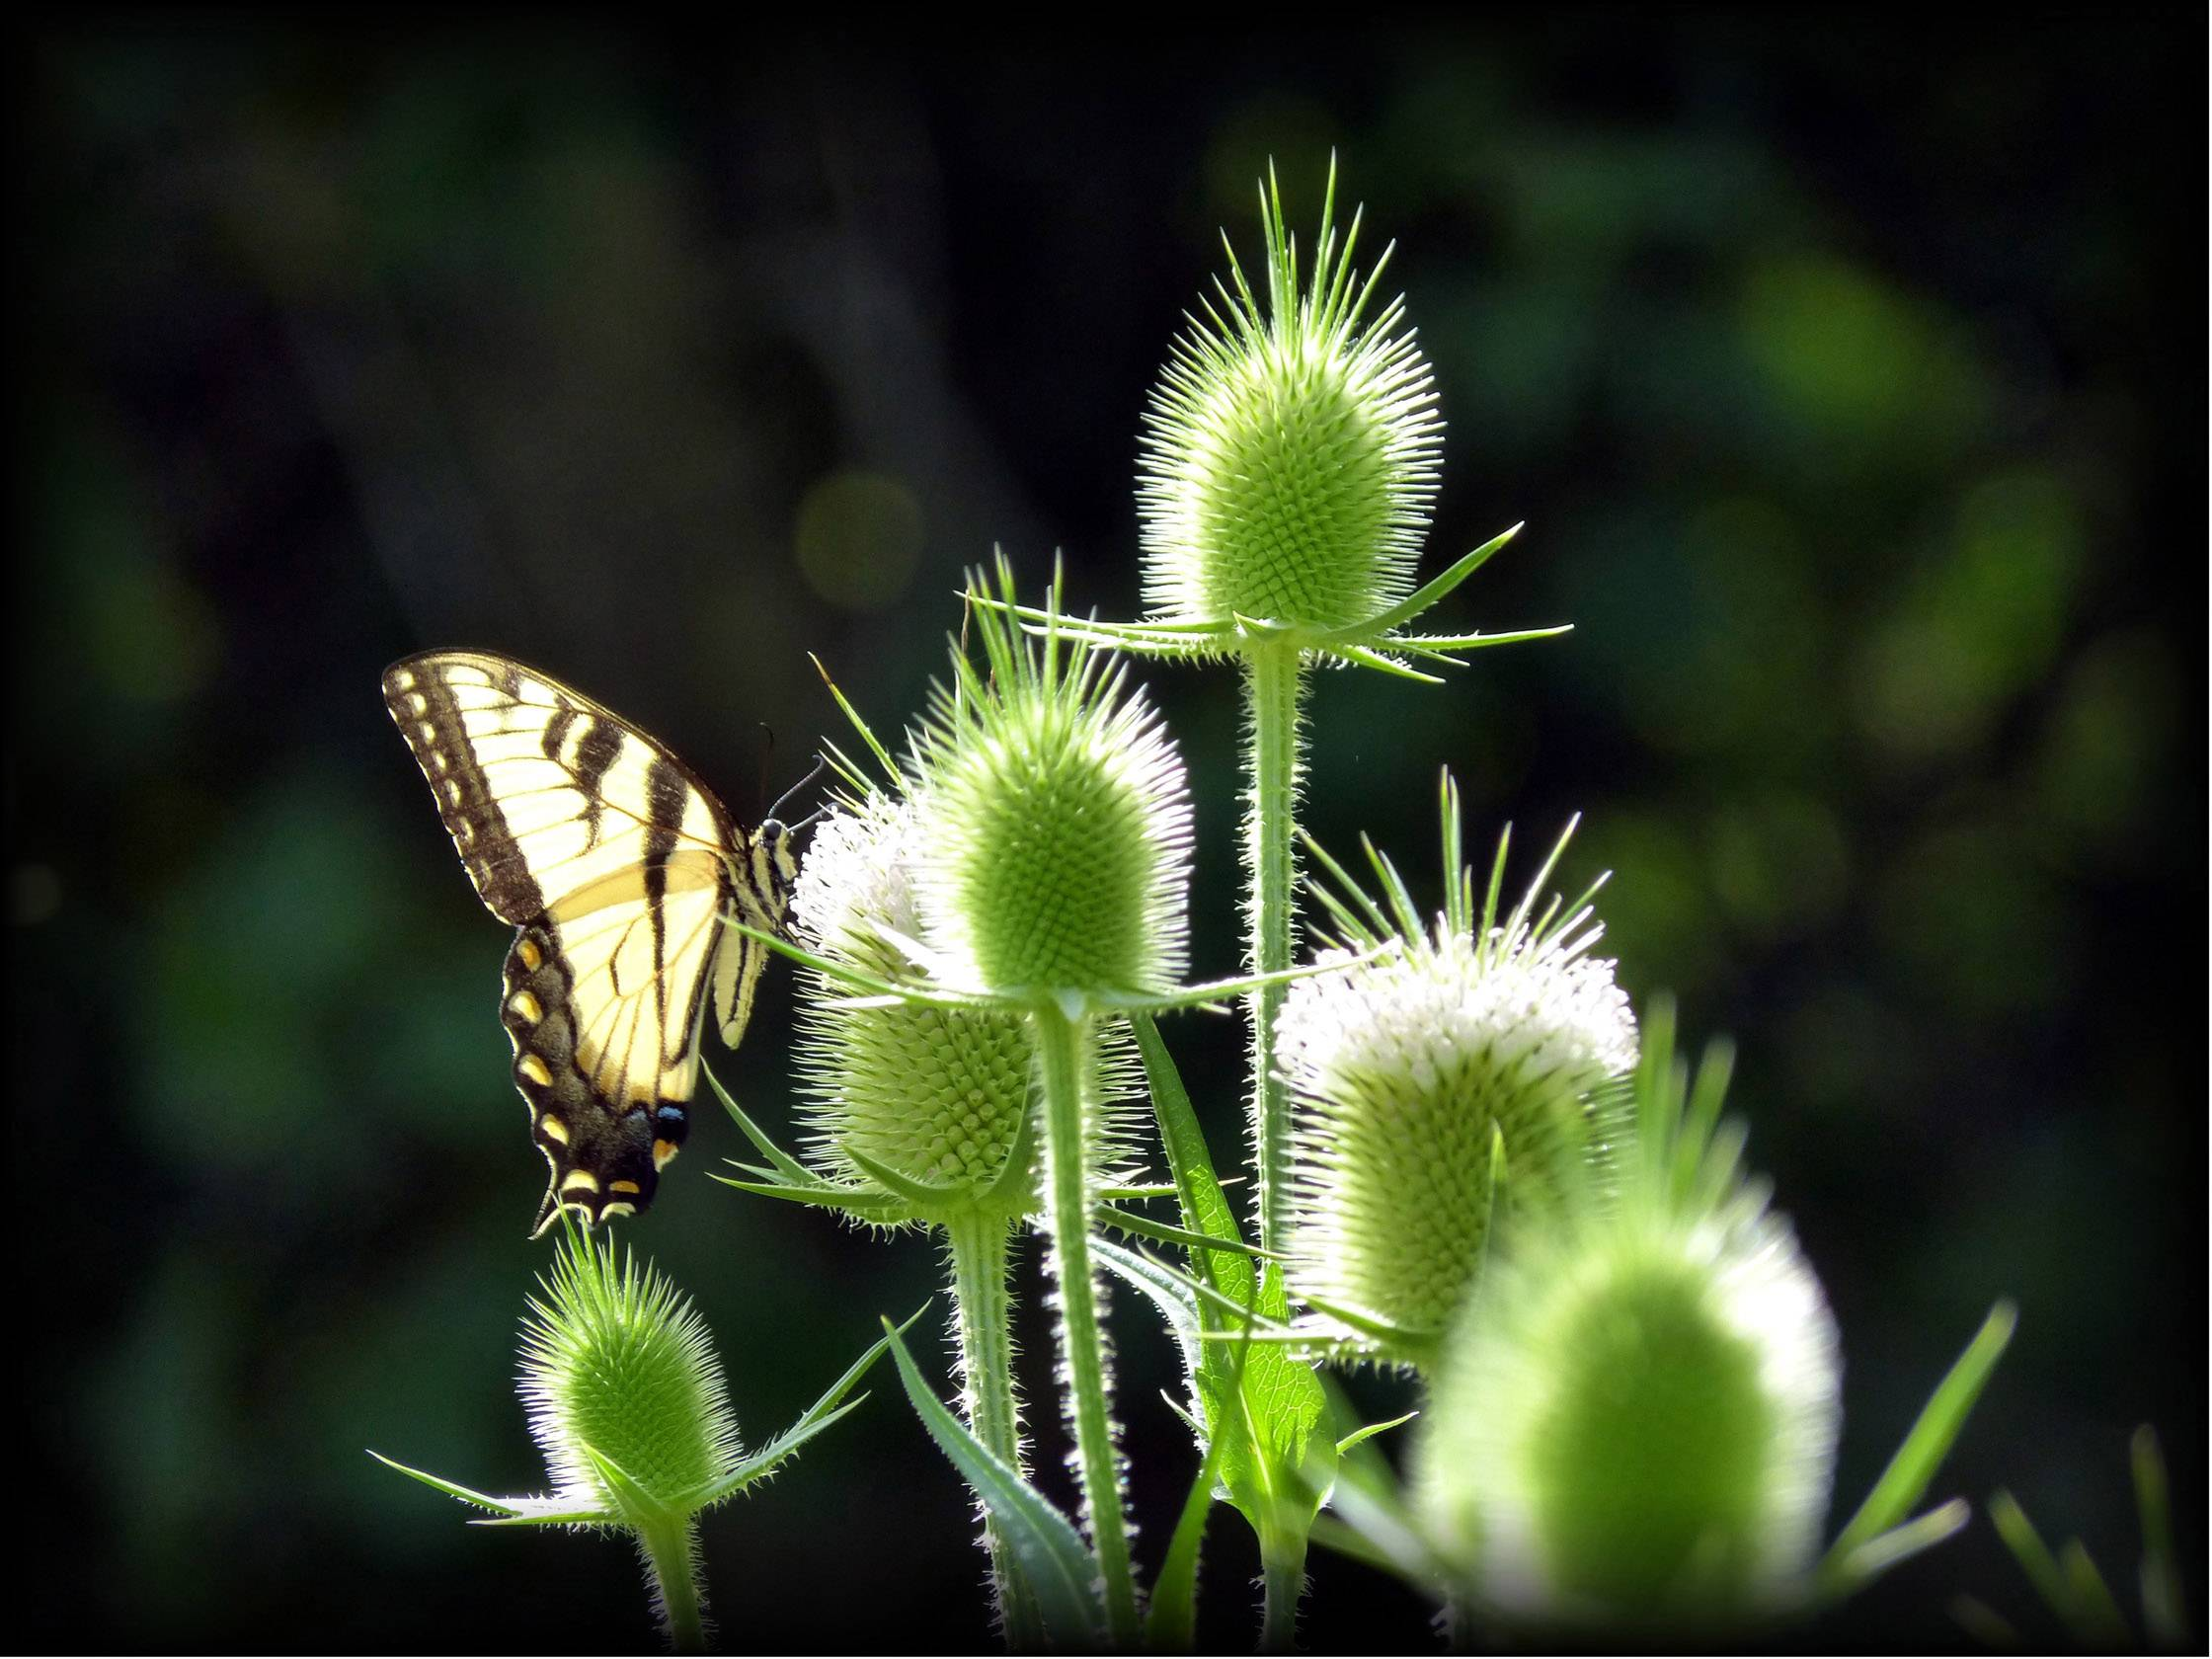 The rising sun illuminates the needles of the thistles and catches the delicate nature of the wings of a male swallowtail out looking for a morning meal.